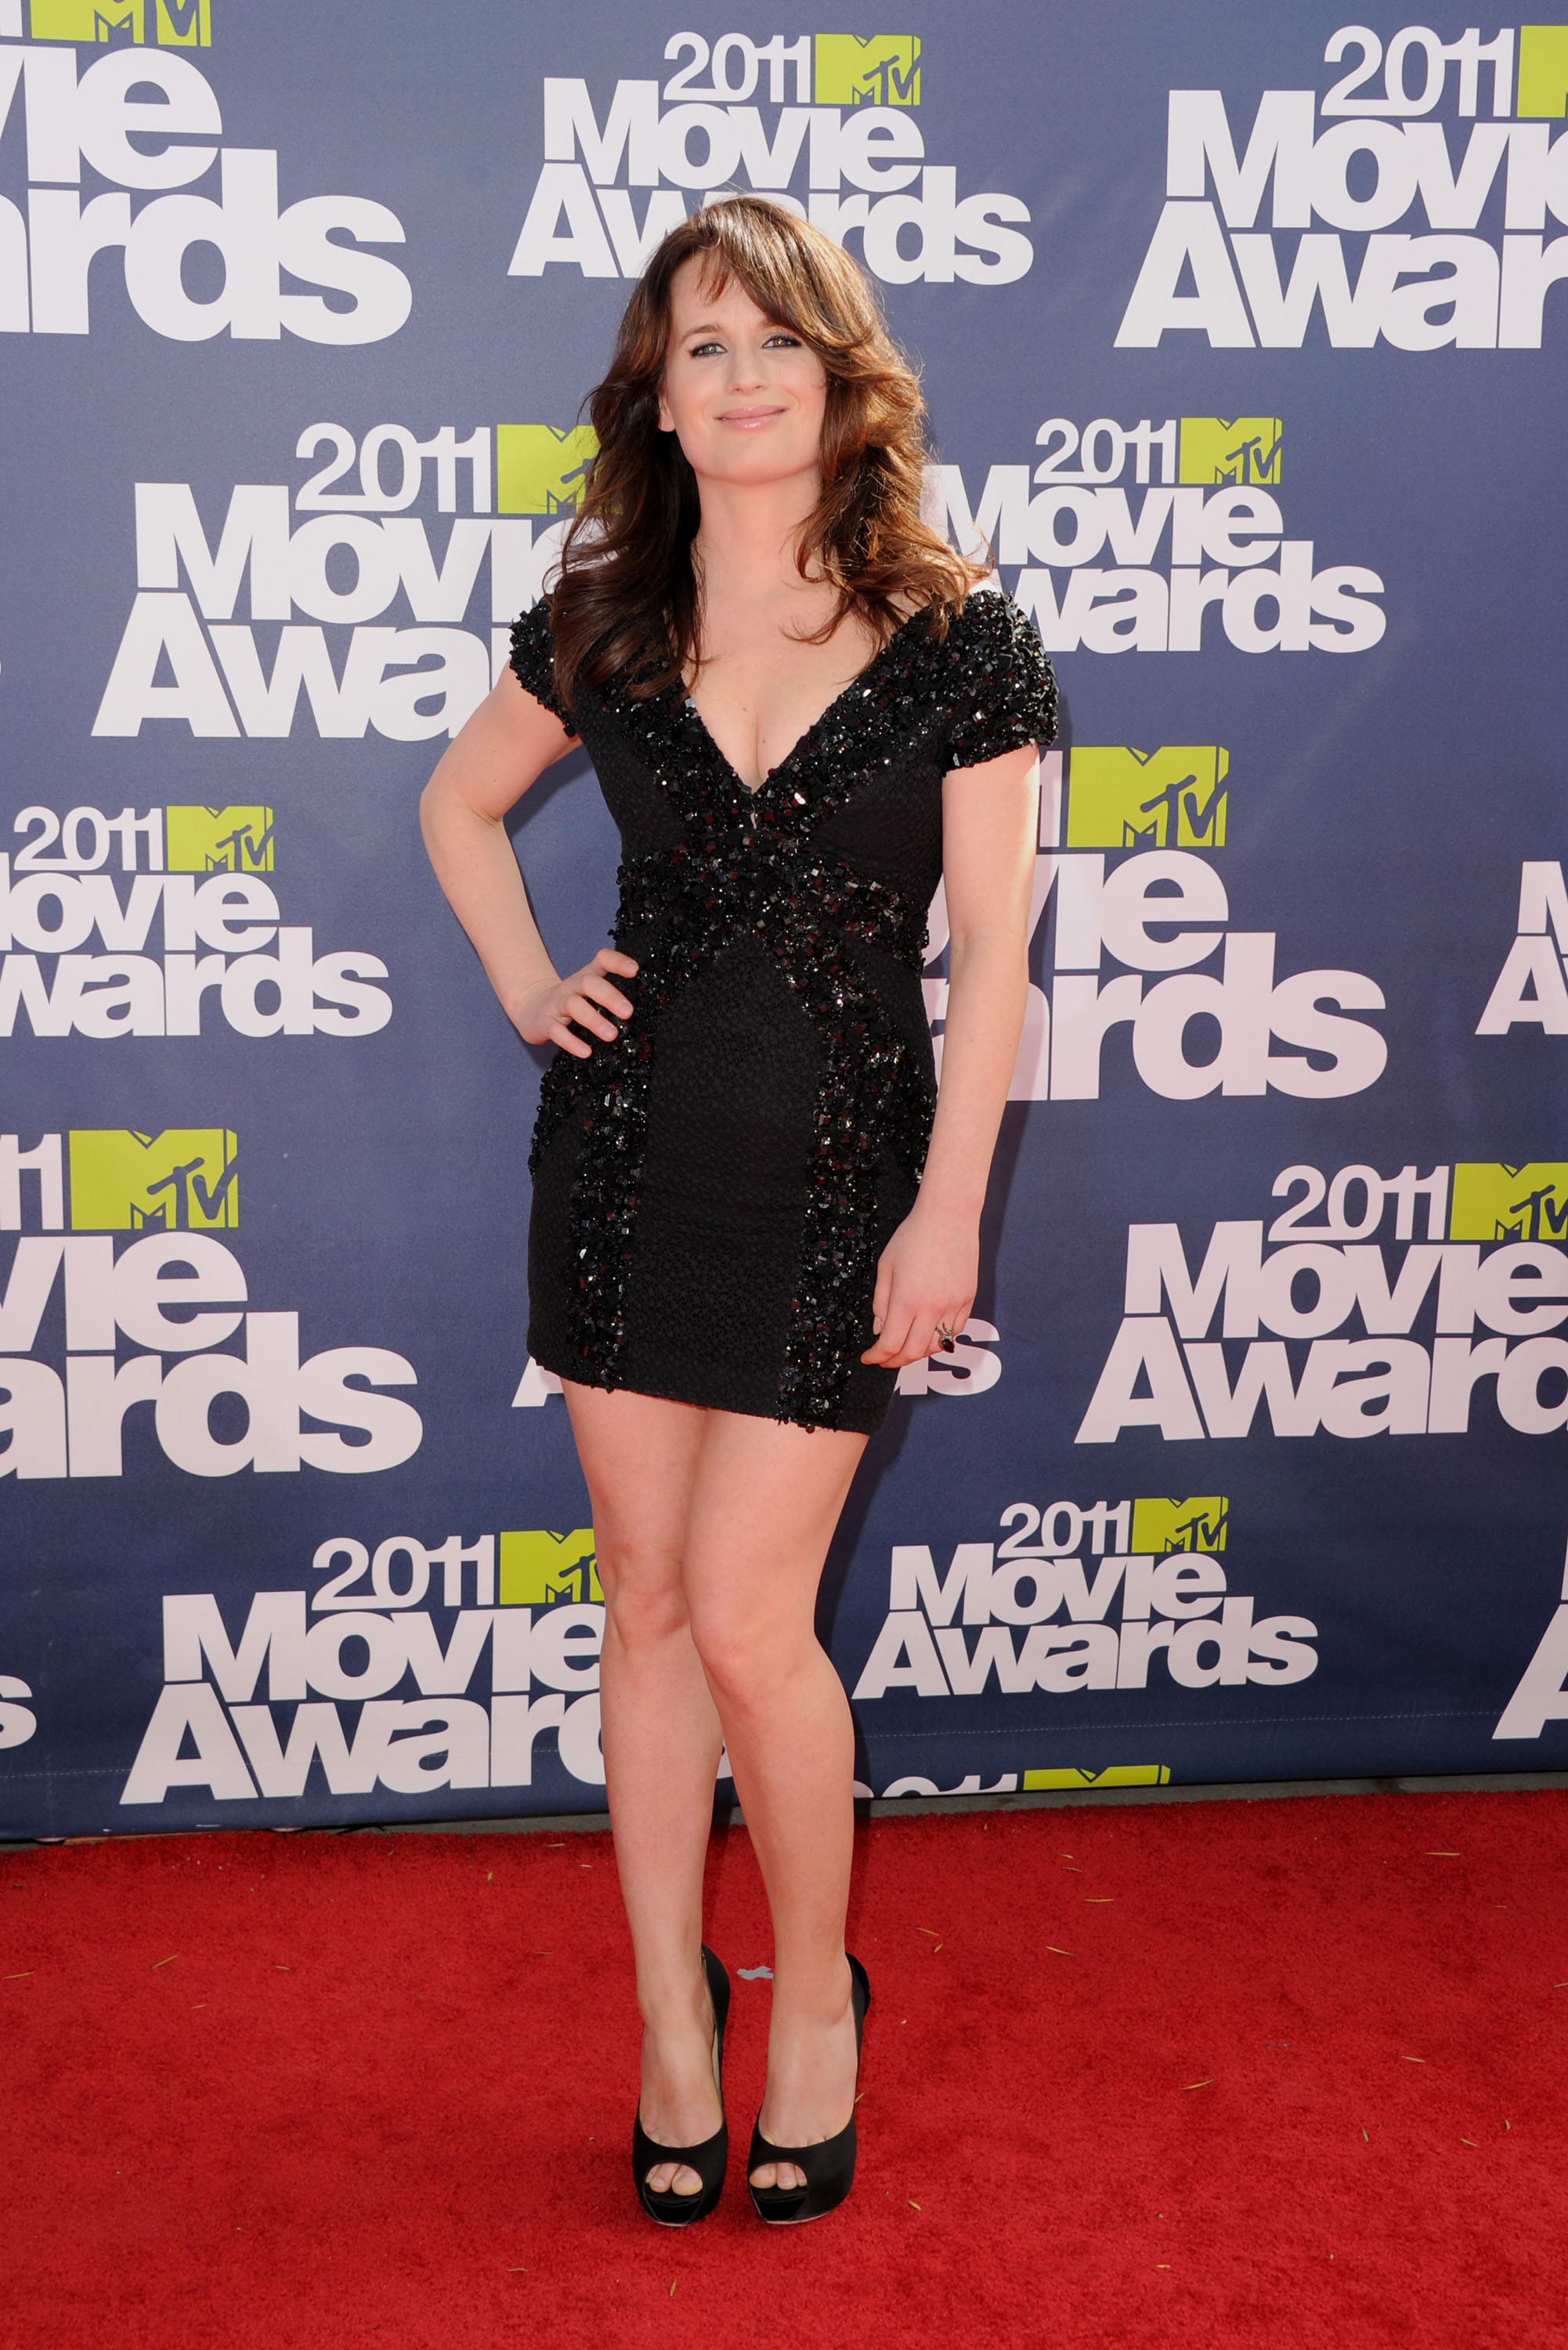 UNIVERSAL CITY, CA - JUNE 05: Actress Elizabeth Reaser arrives at the 2011 MTV Movie Awards at Universal Studios' Gibson Amphitheatre on June 5, 2011 in Universal City, California. (Photo by Jason Merritt/Getty Images)